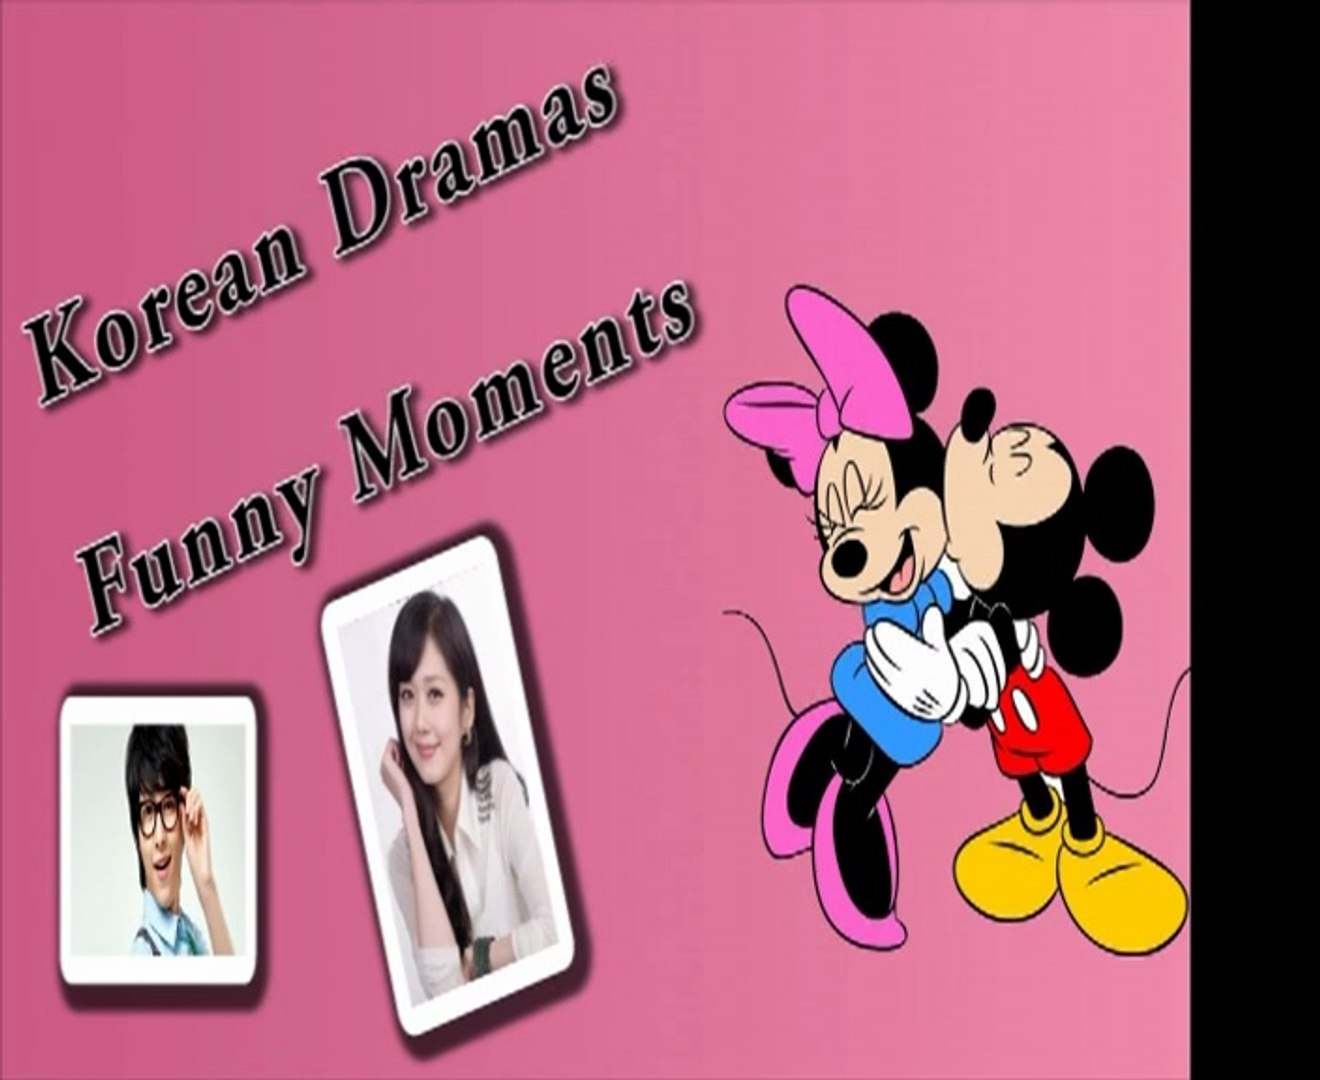 Korean Dramas Funny Moments [앗 뜨거 Song]